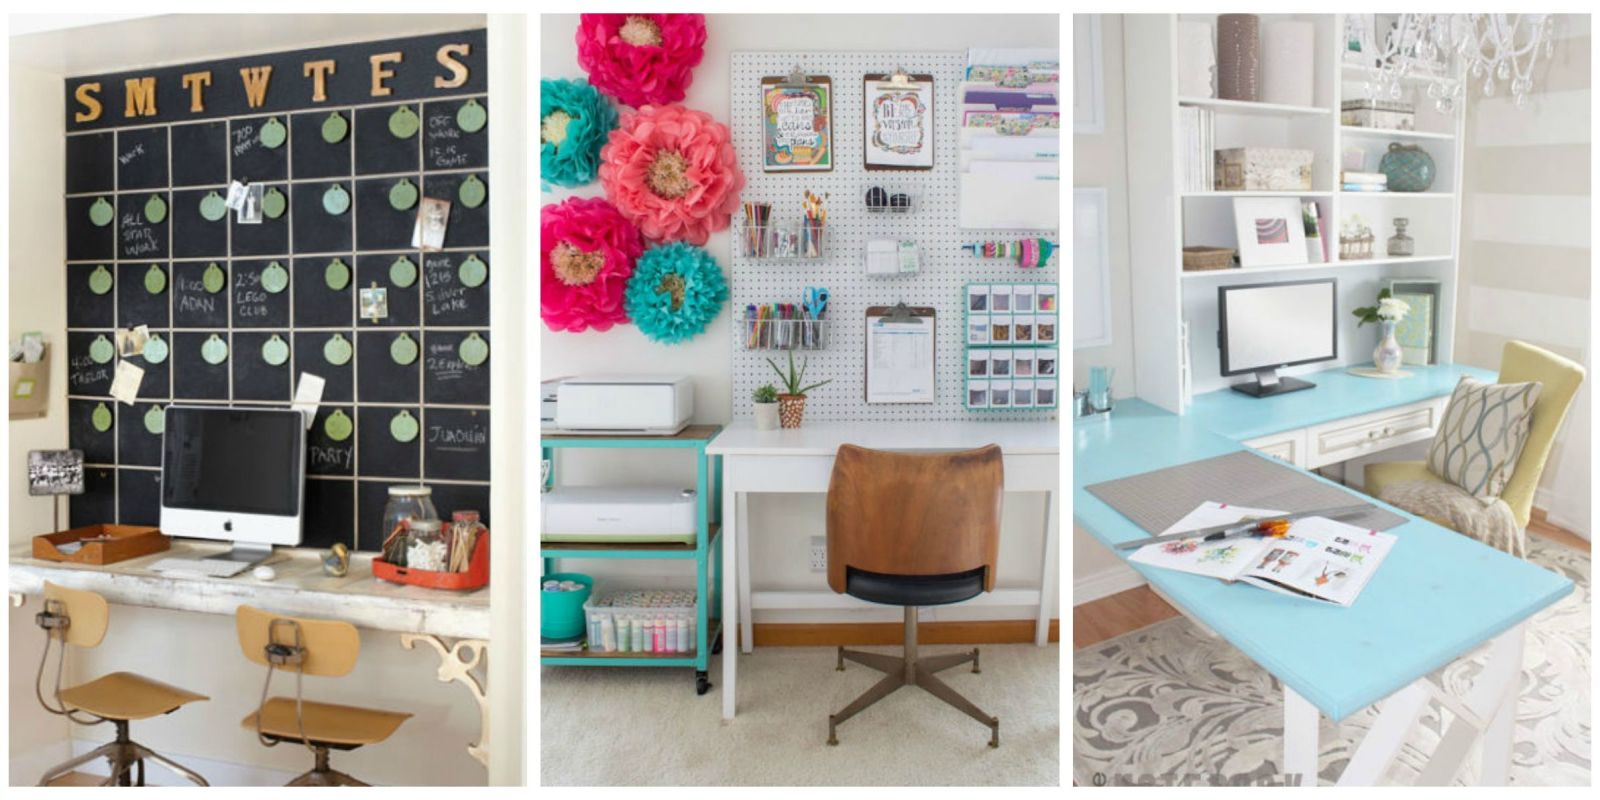 Home Office Ideas How To Decorate A Home Office - Cheap office decorating ideas